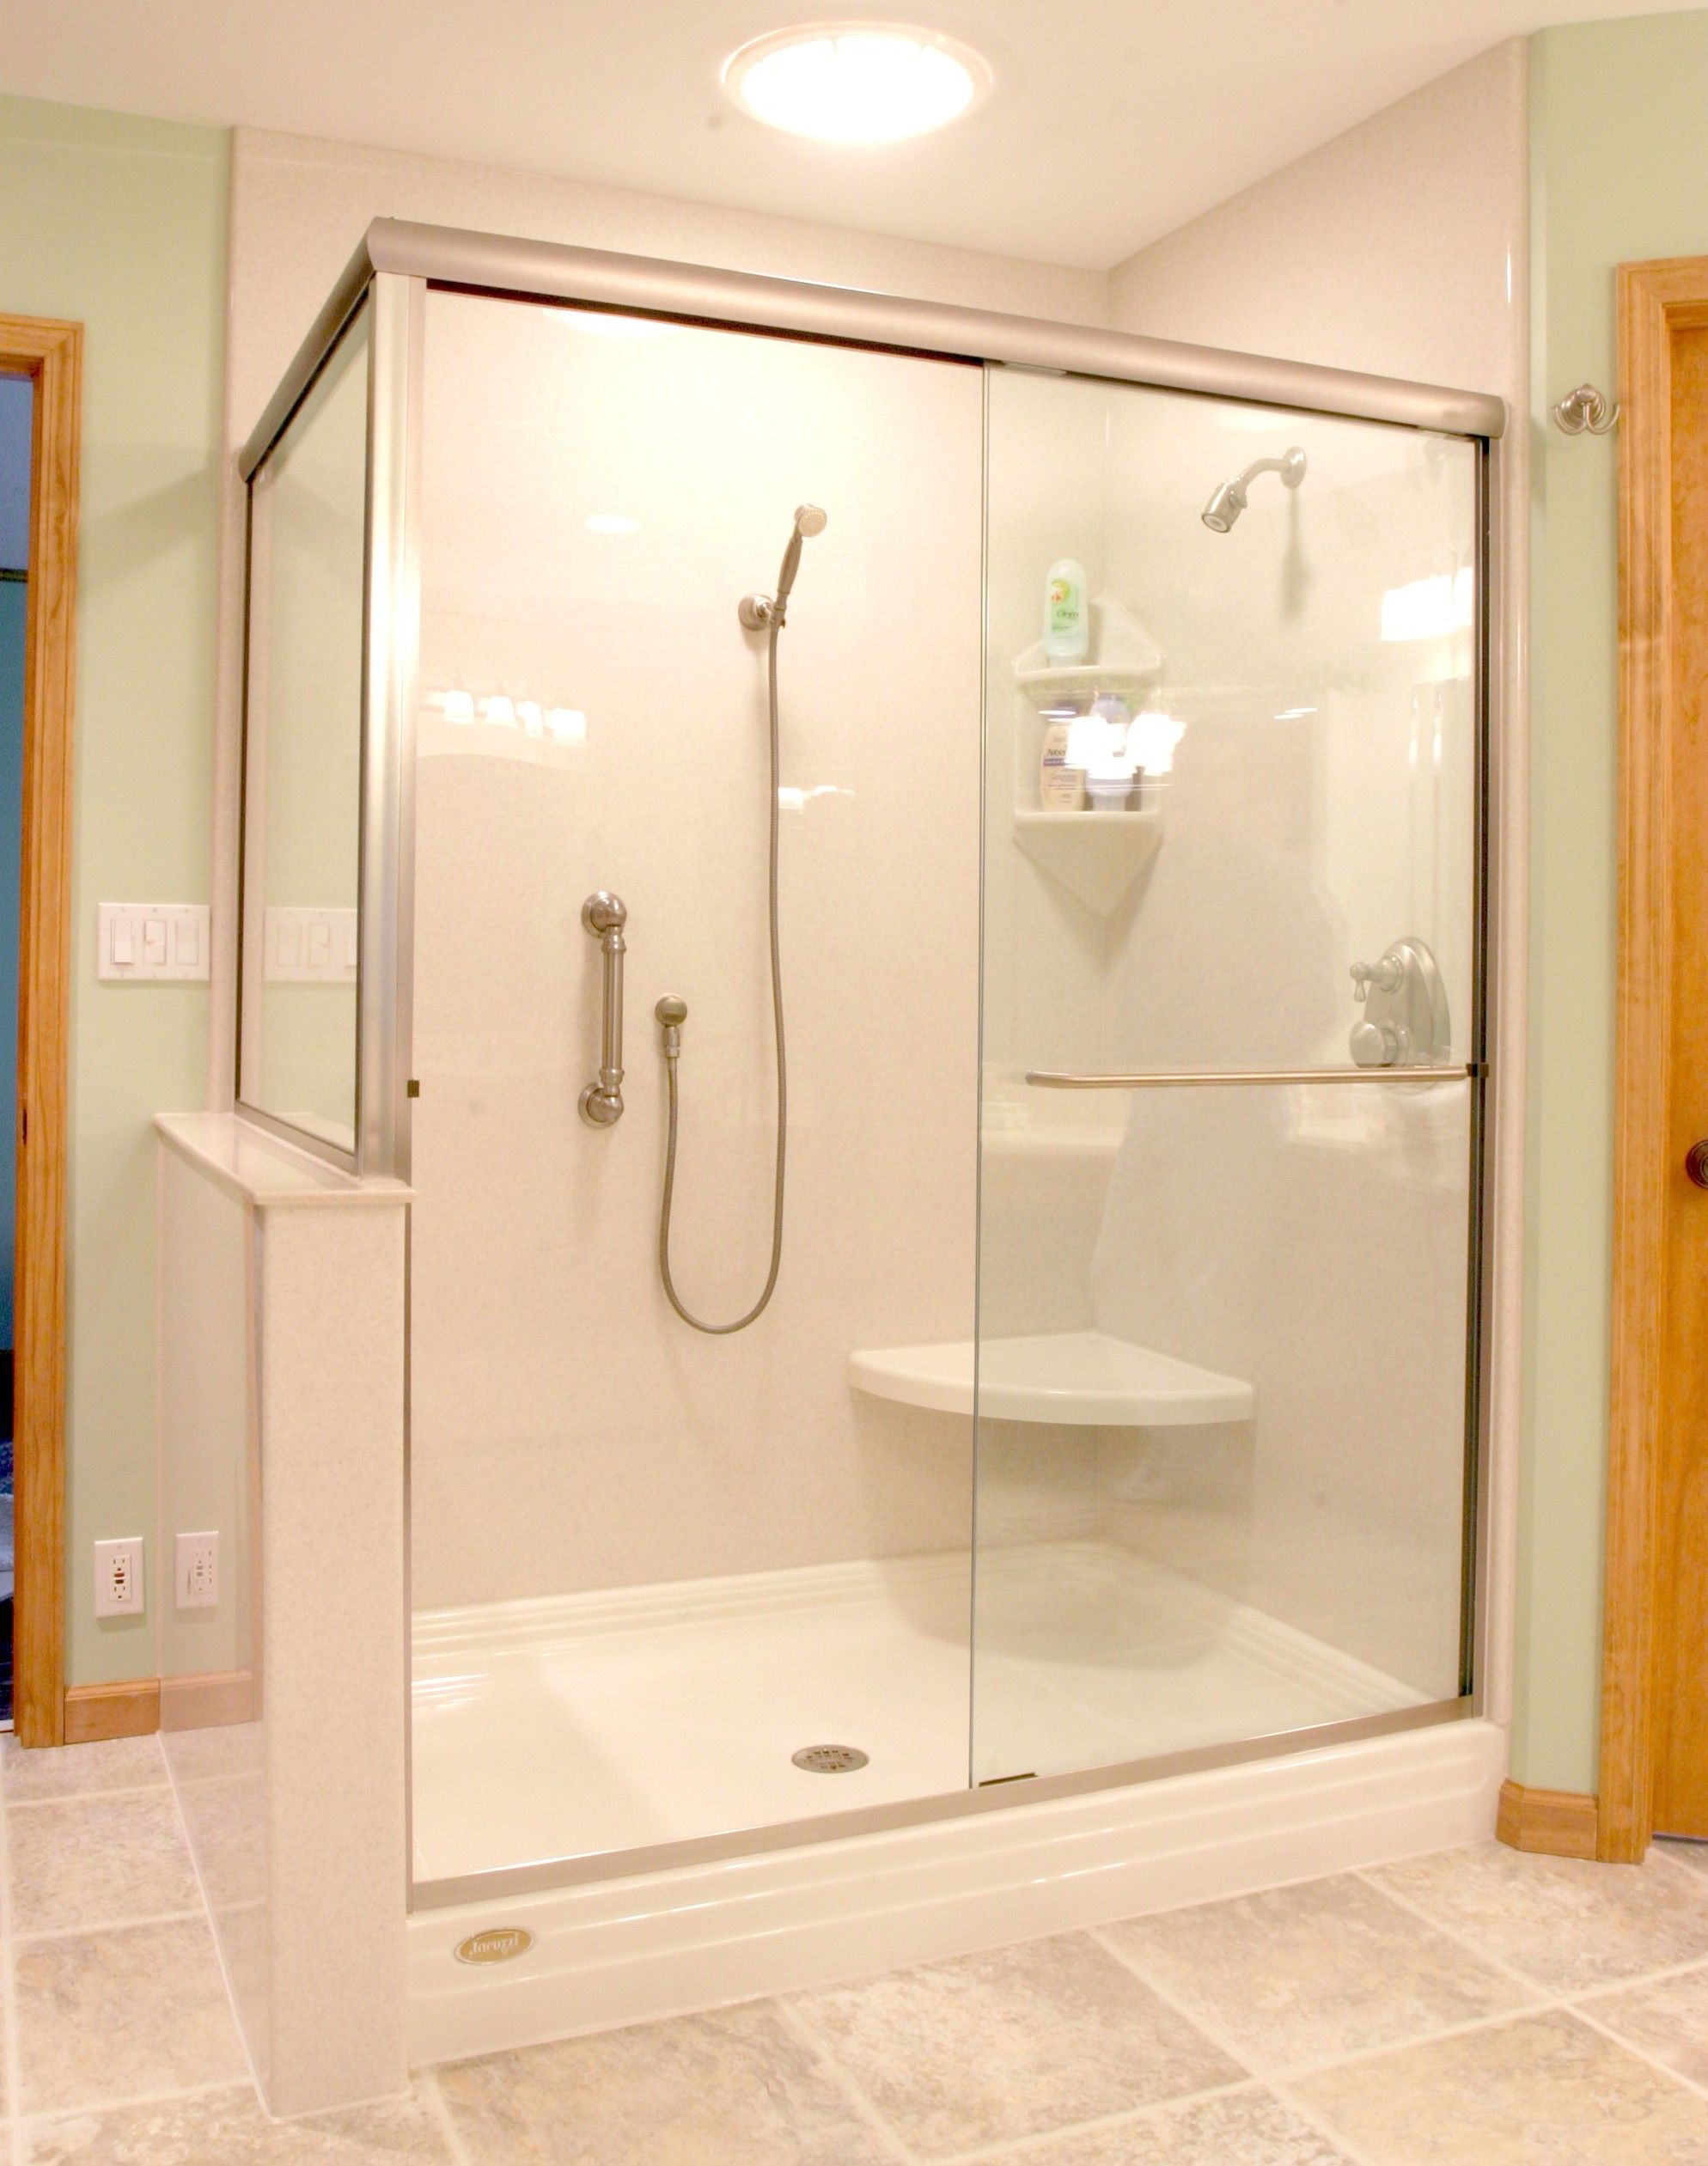 Custom Showers Showers Showerroom Ideas Showers Pinterest - Custom showers